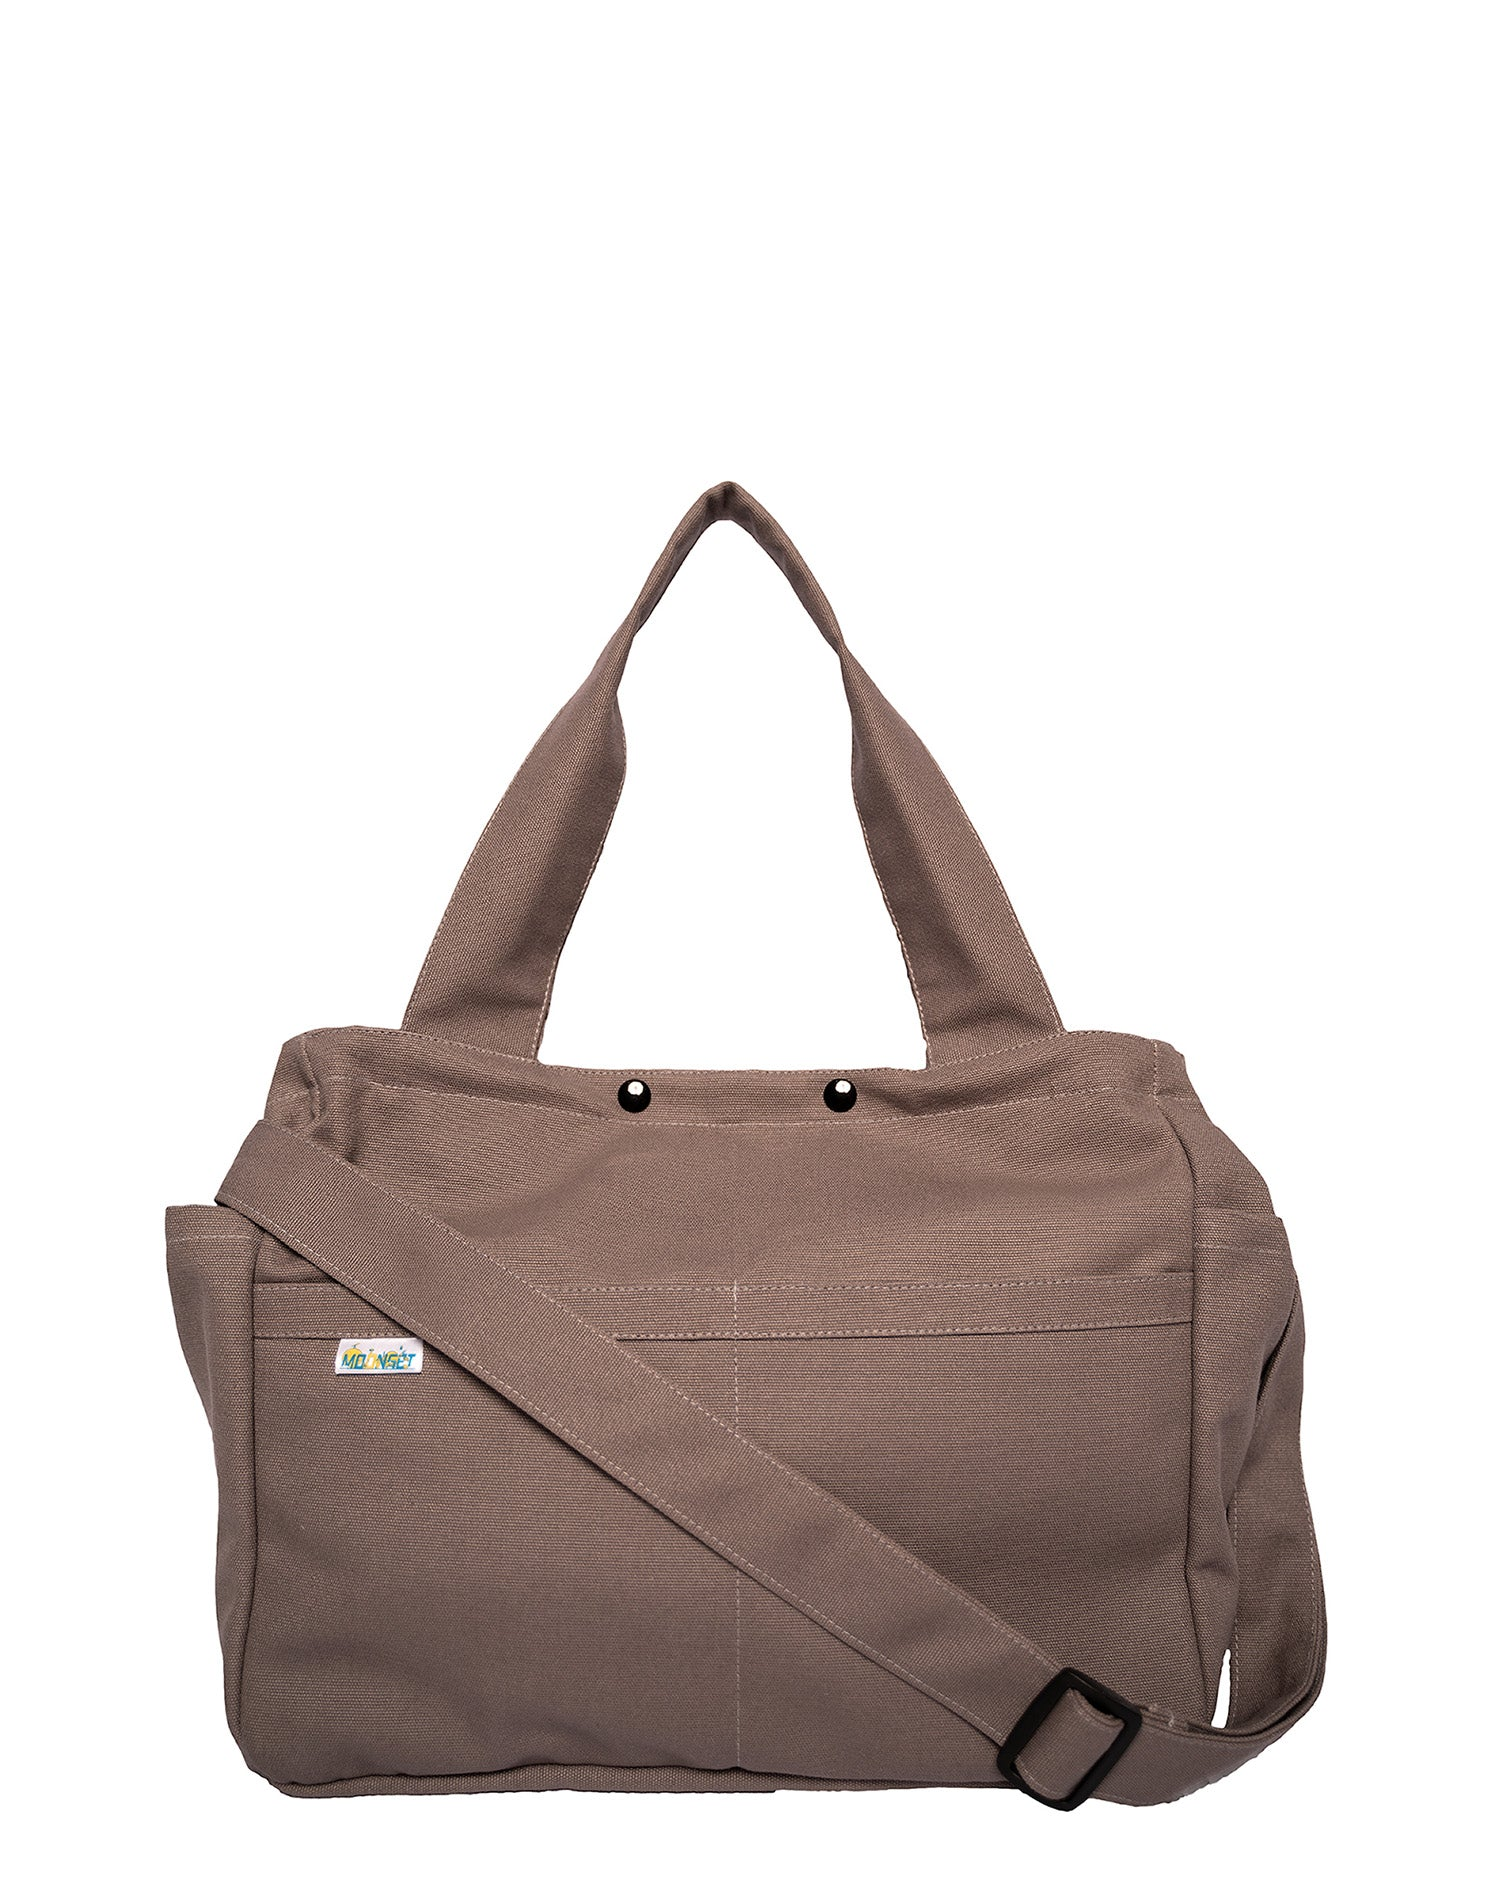 Dark Grey Square Canvas Tote Bag.深灰色方形帆布側孭袋